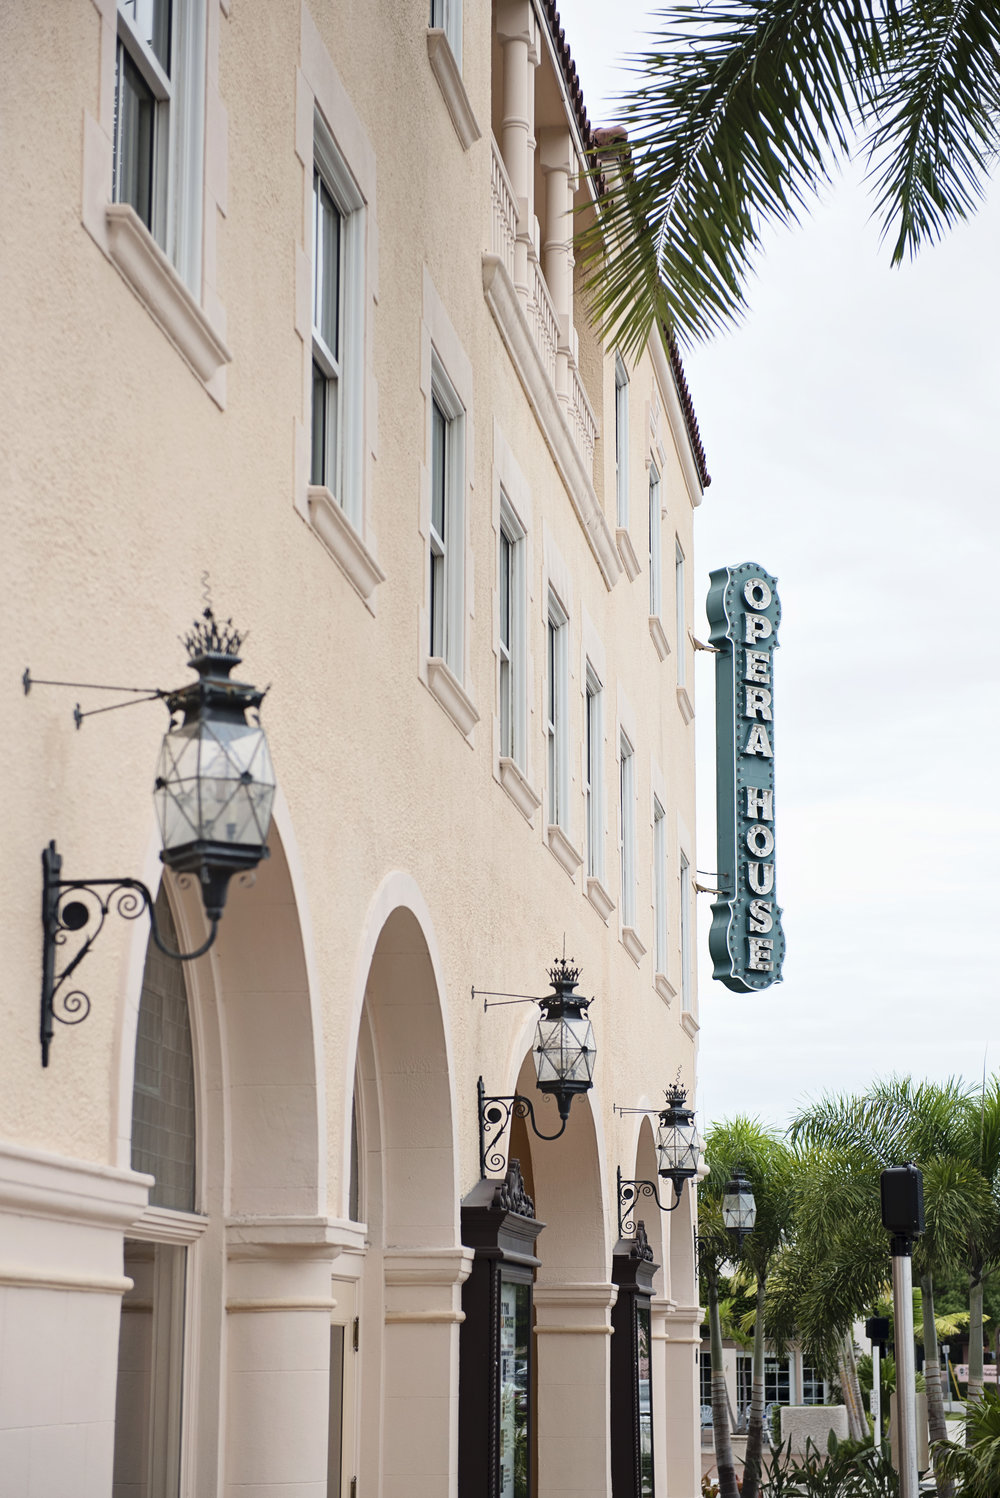 Copy of Sarasota's Opera House